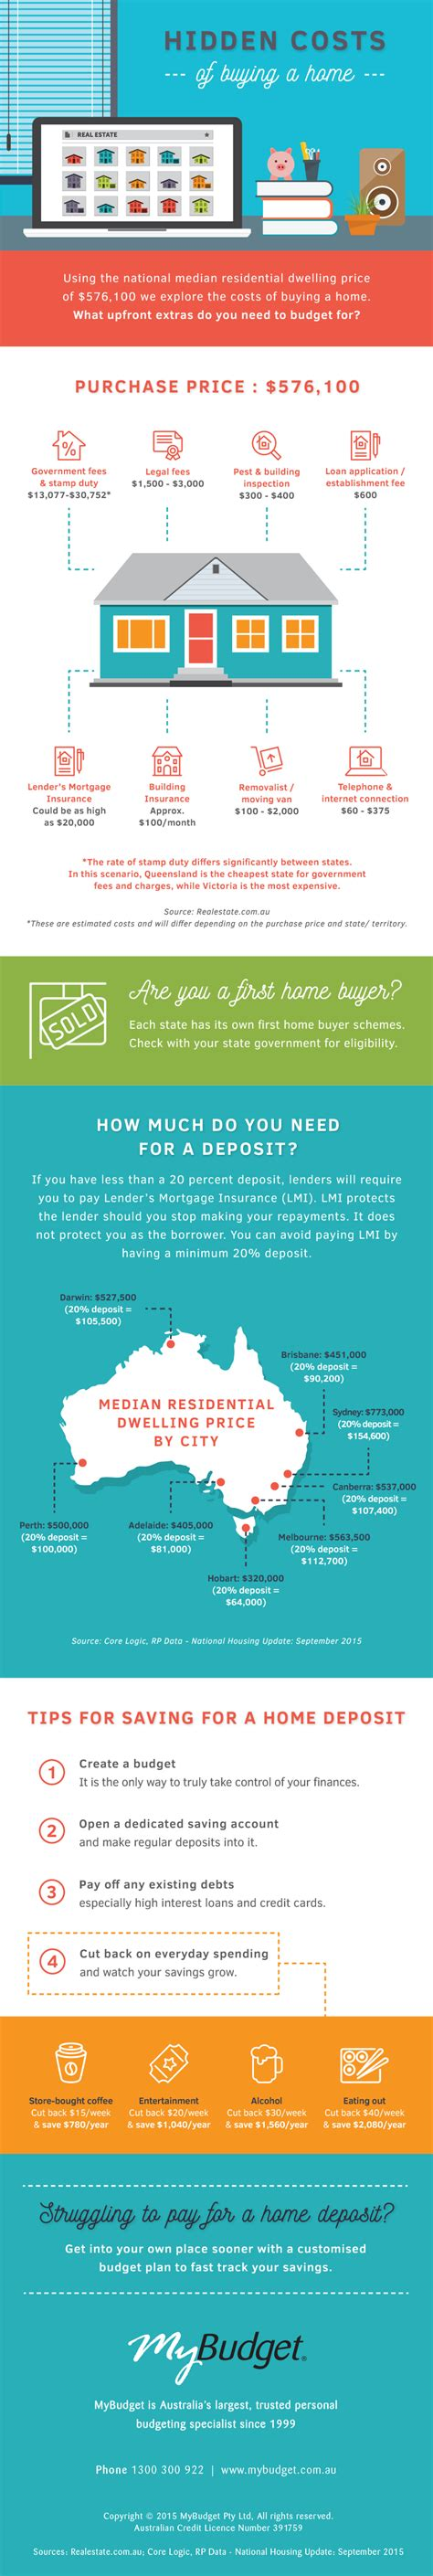 how much are legal fees when buying a house mybudget blog hidden costs of buying a home infographic